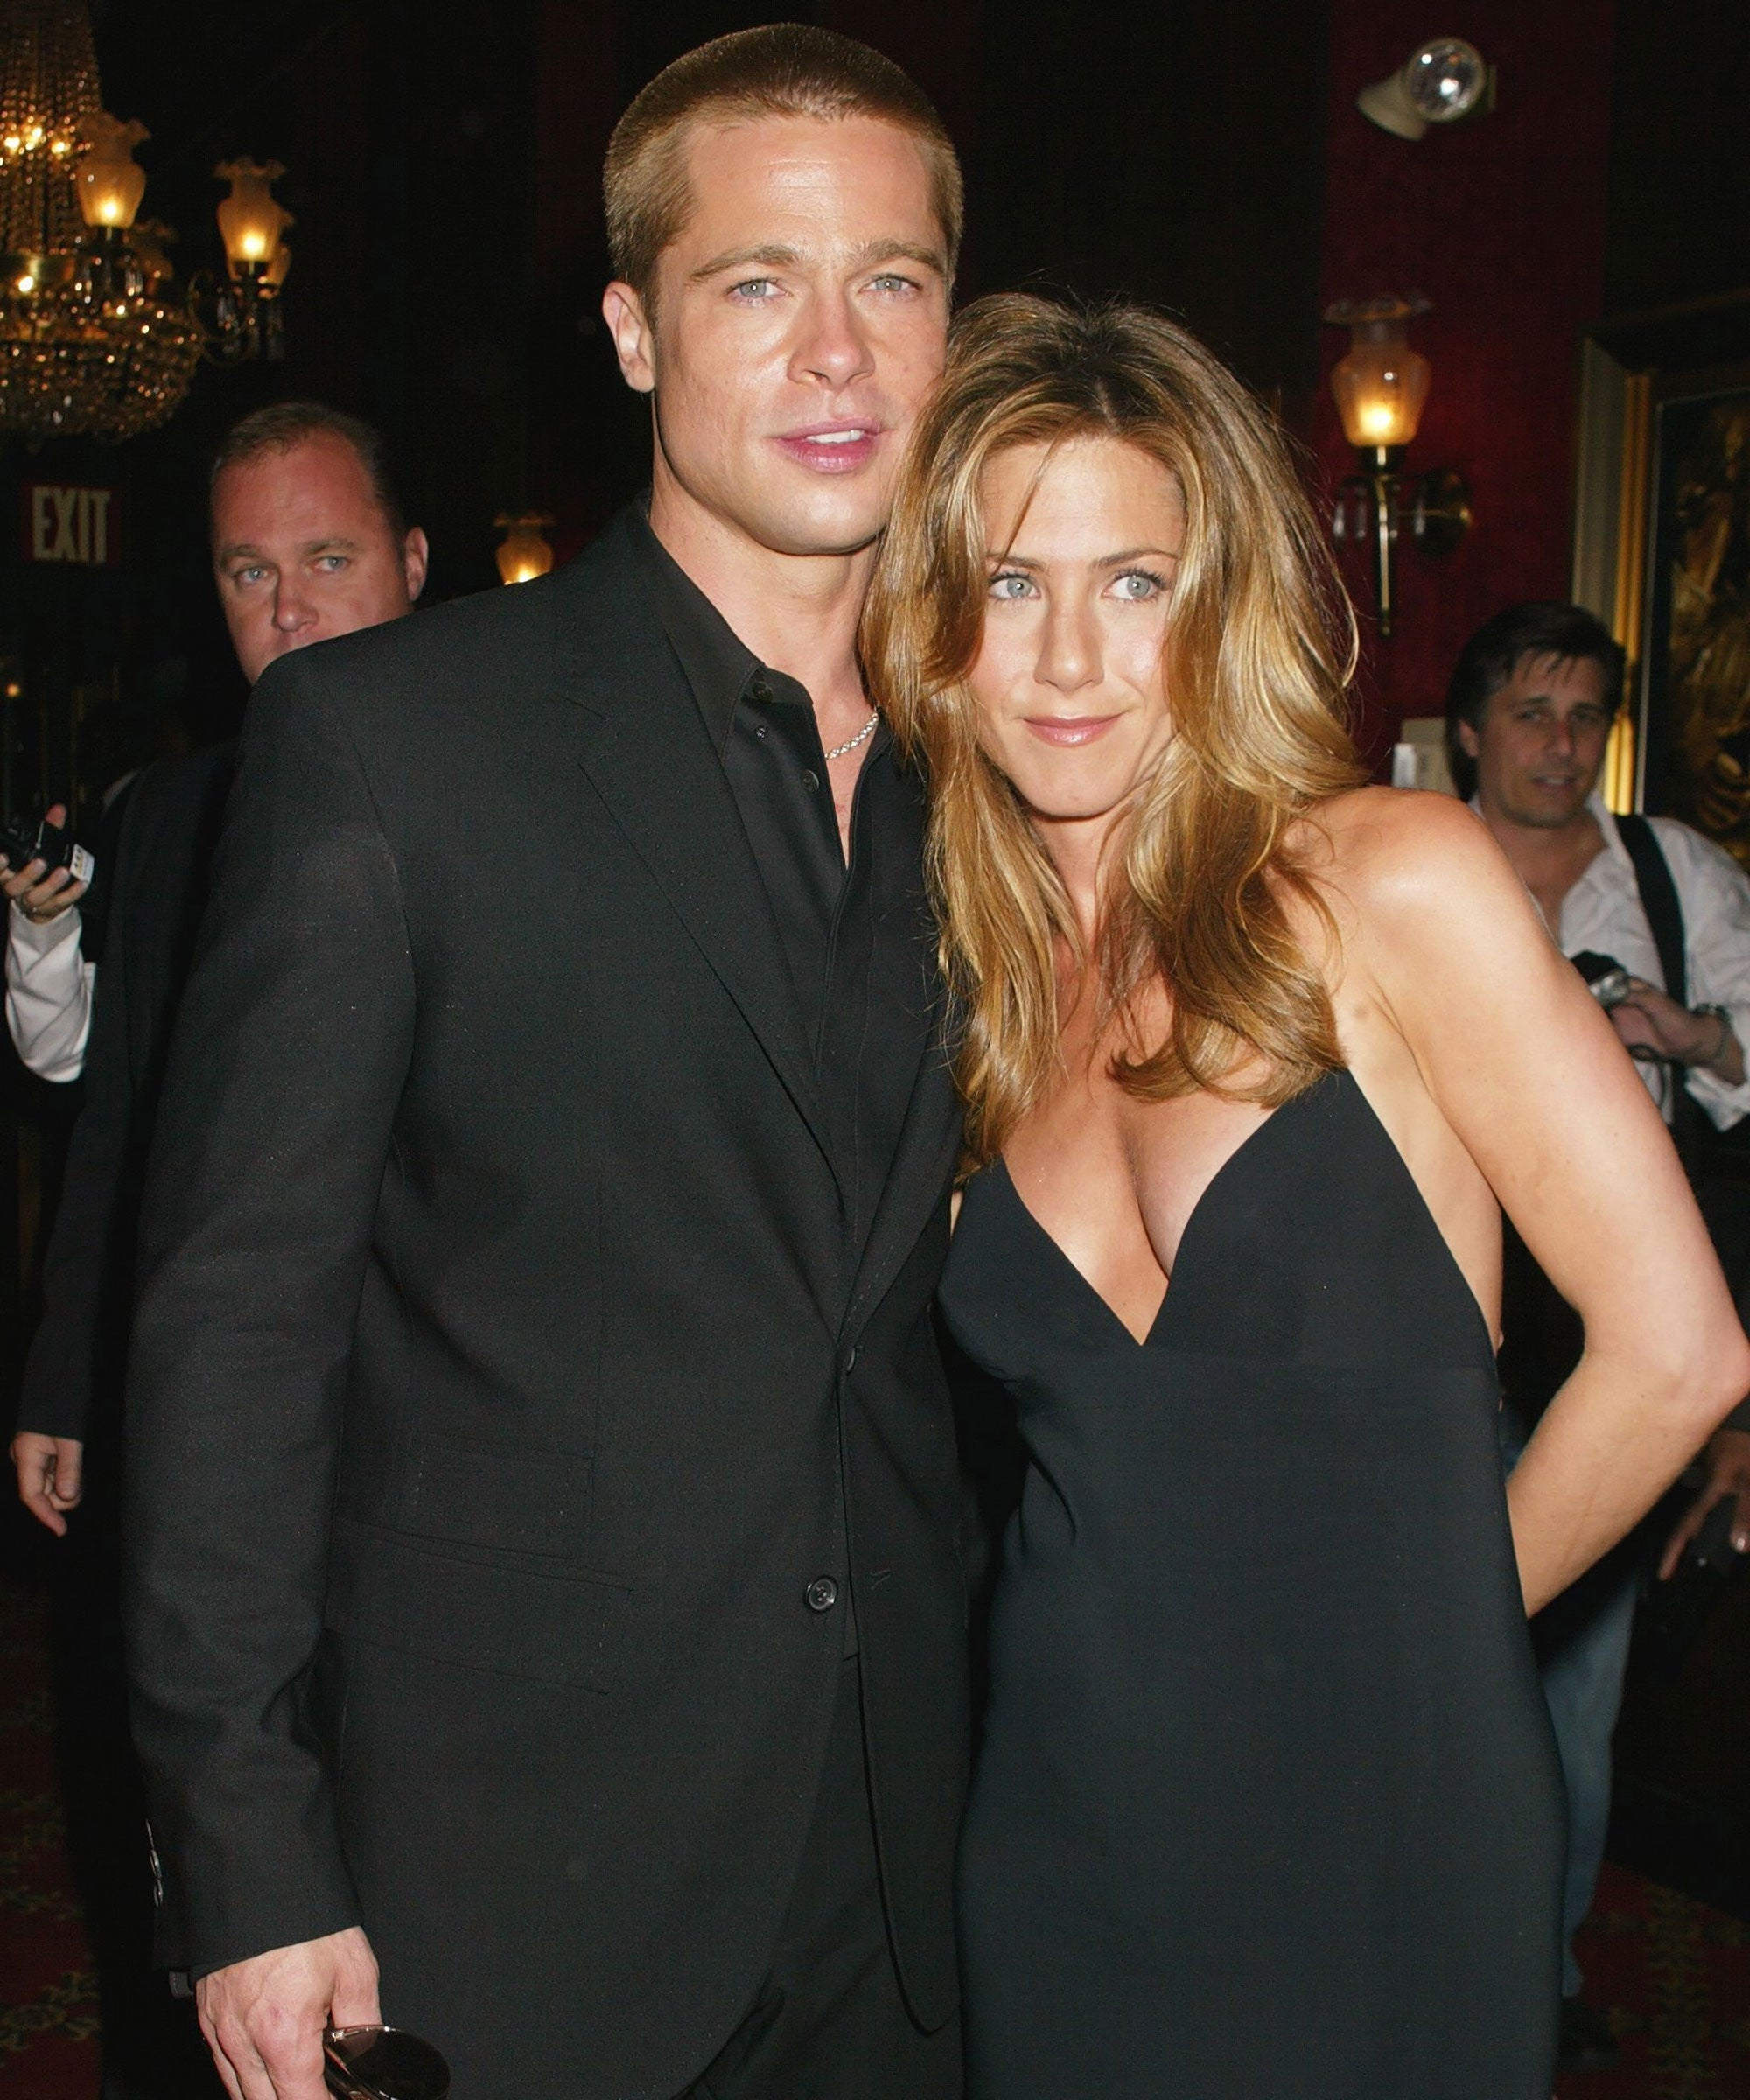 Brad Pitt & Jennifer Aniston's Reunion At The SAG Awards Has Celebs Losing It